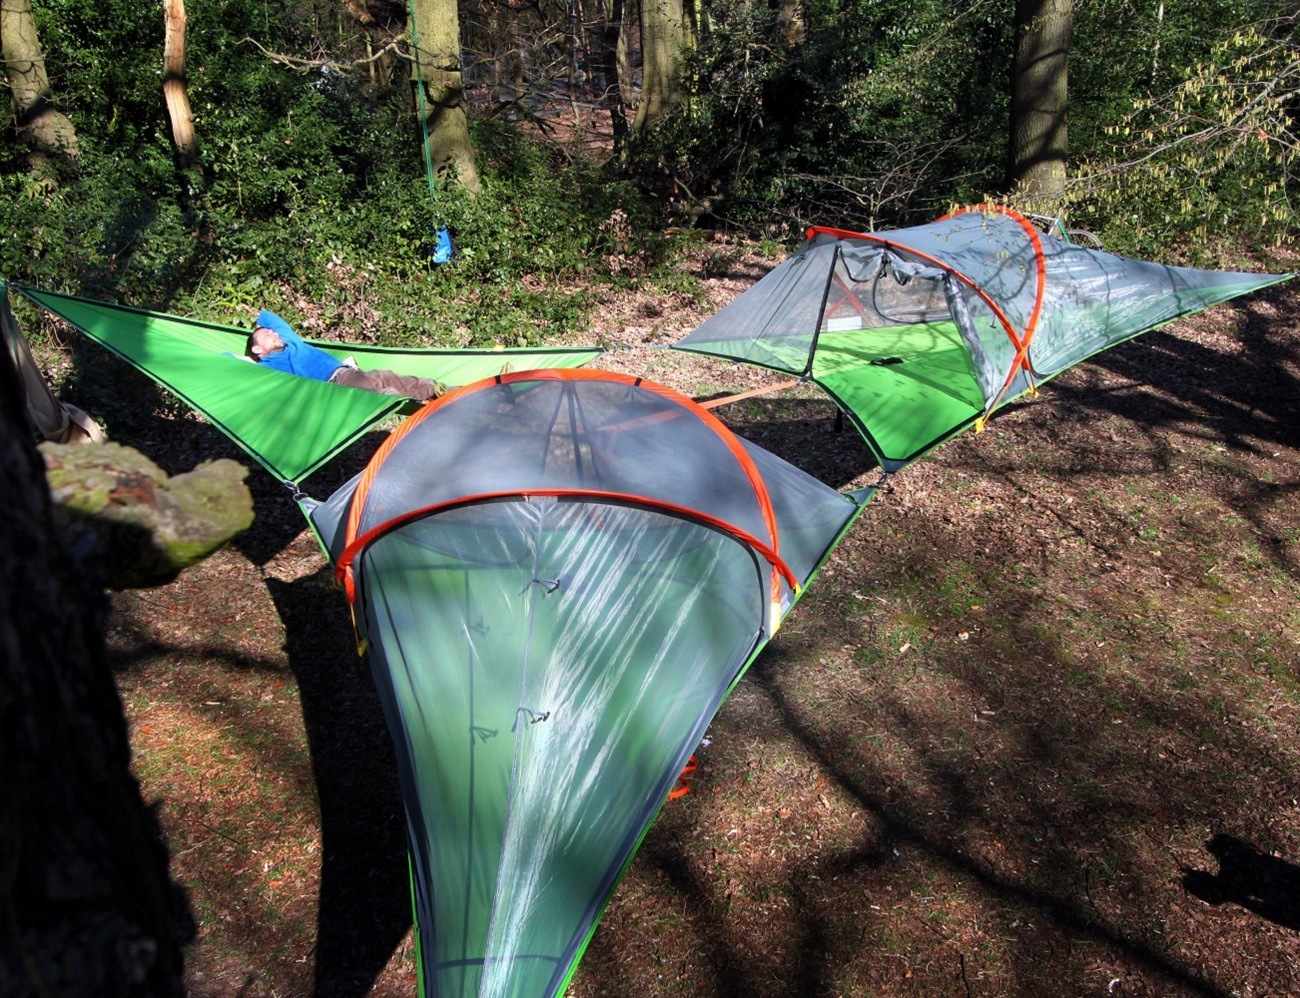 Trilogy+Super-Tent+Combo+By+Tentsile